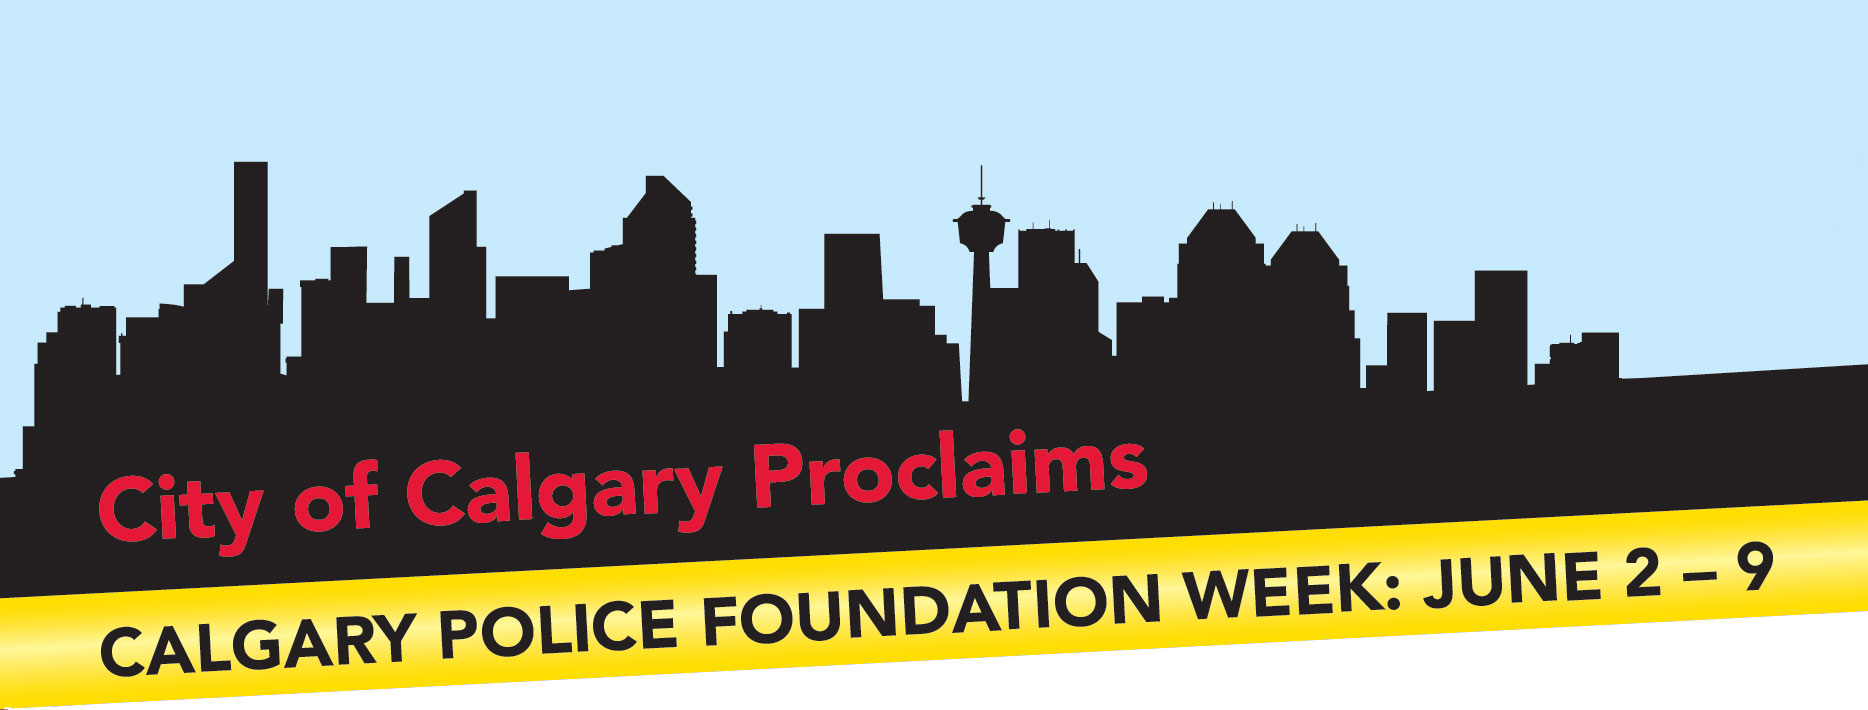 City of Calgary Proclaims - Calgary Police Foundation Week: June 2 - 9